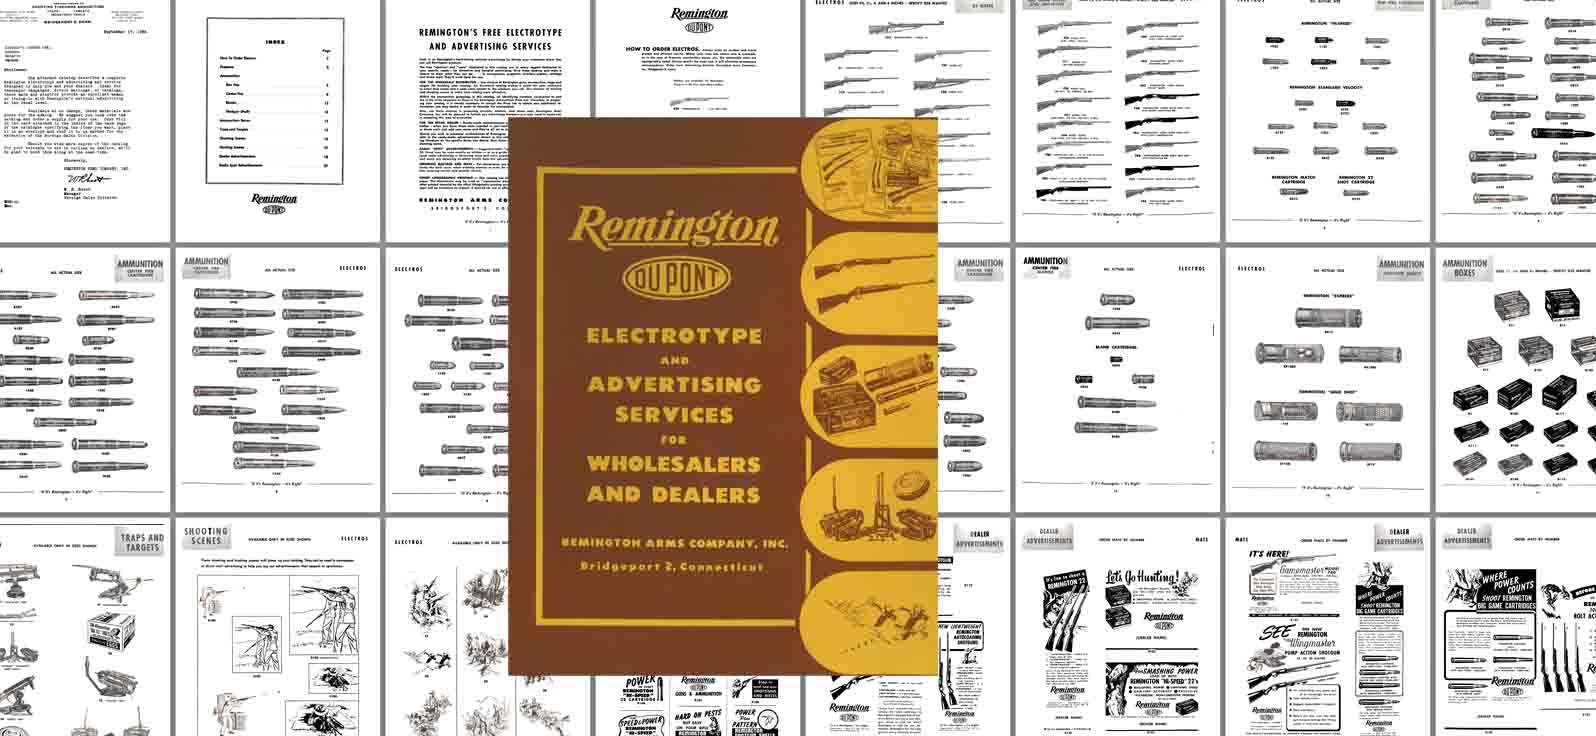 Remington 1954 Advertising Catalog for Dealers